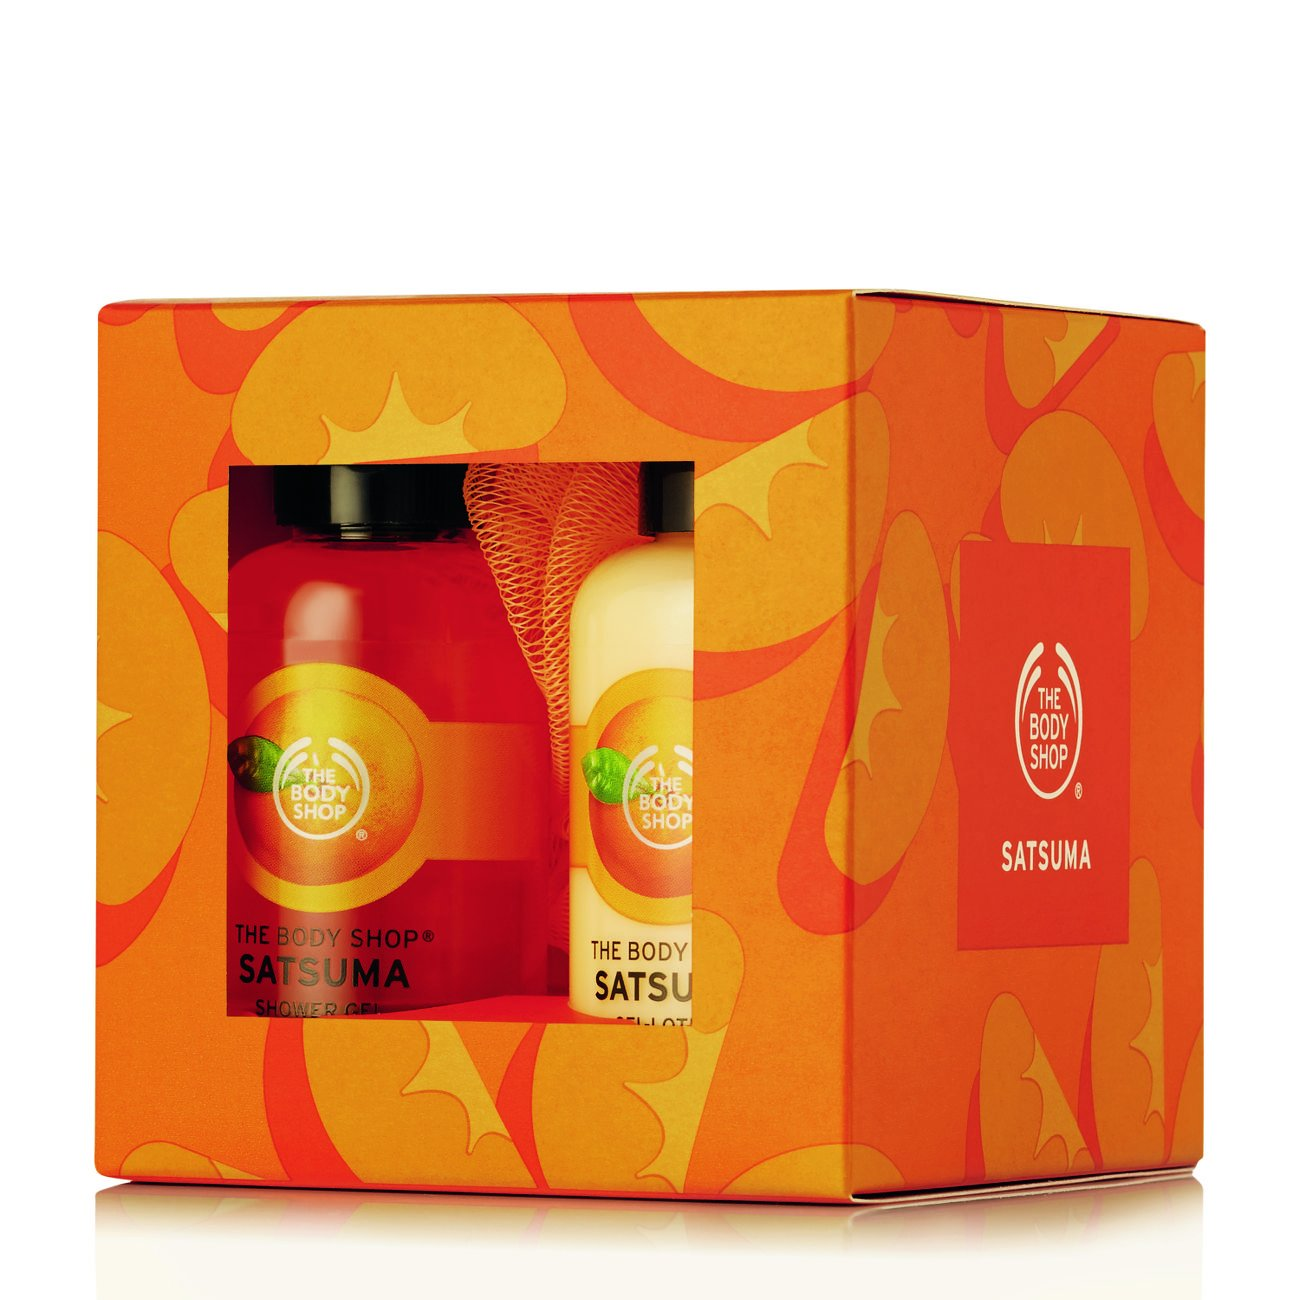 The Body Shop Mango Gift Cube Yes